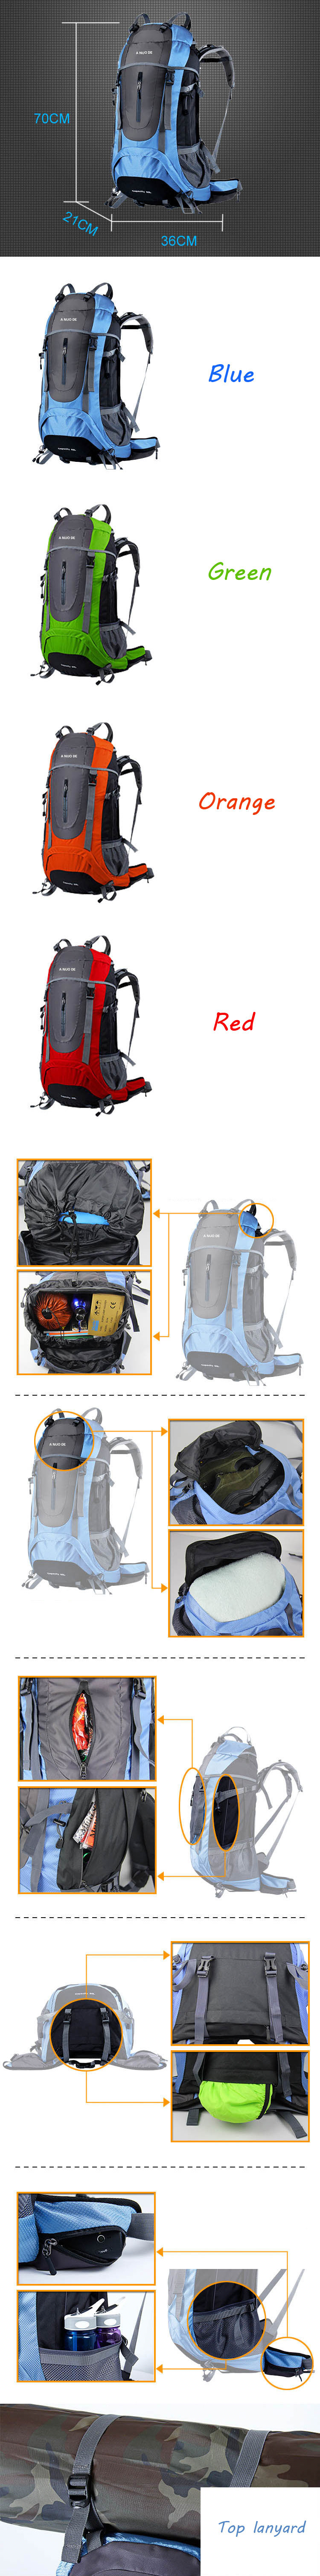 Lowest Price Outdoor Supplies Travel Camping Waterproof Multi-function Mountaineering Bag